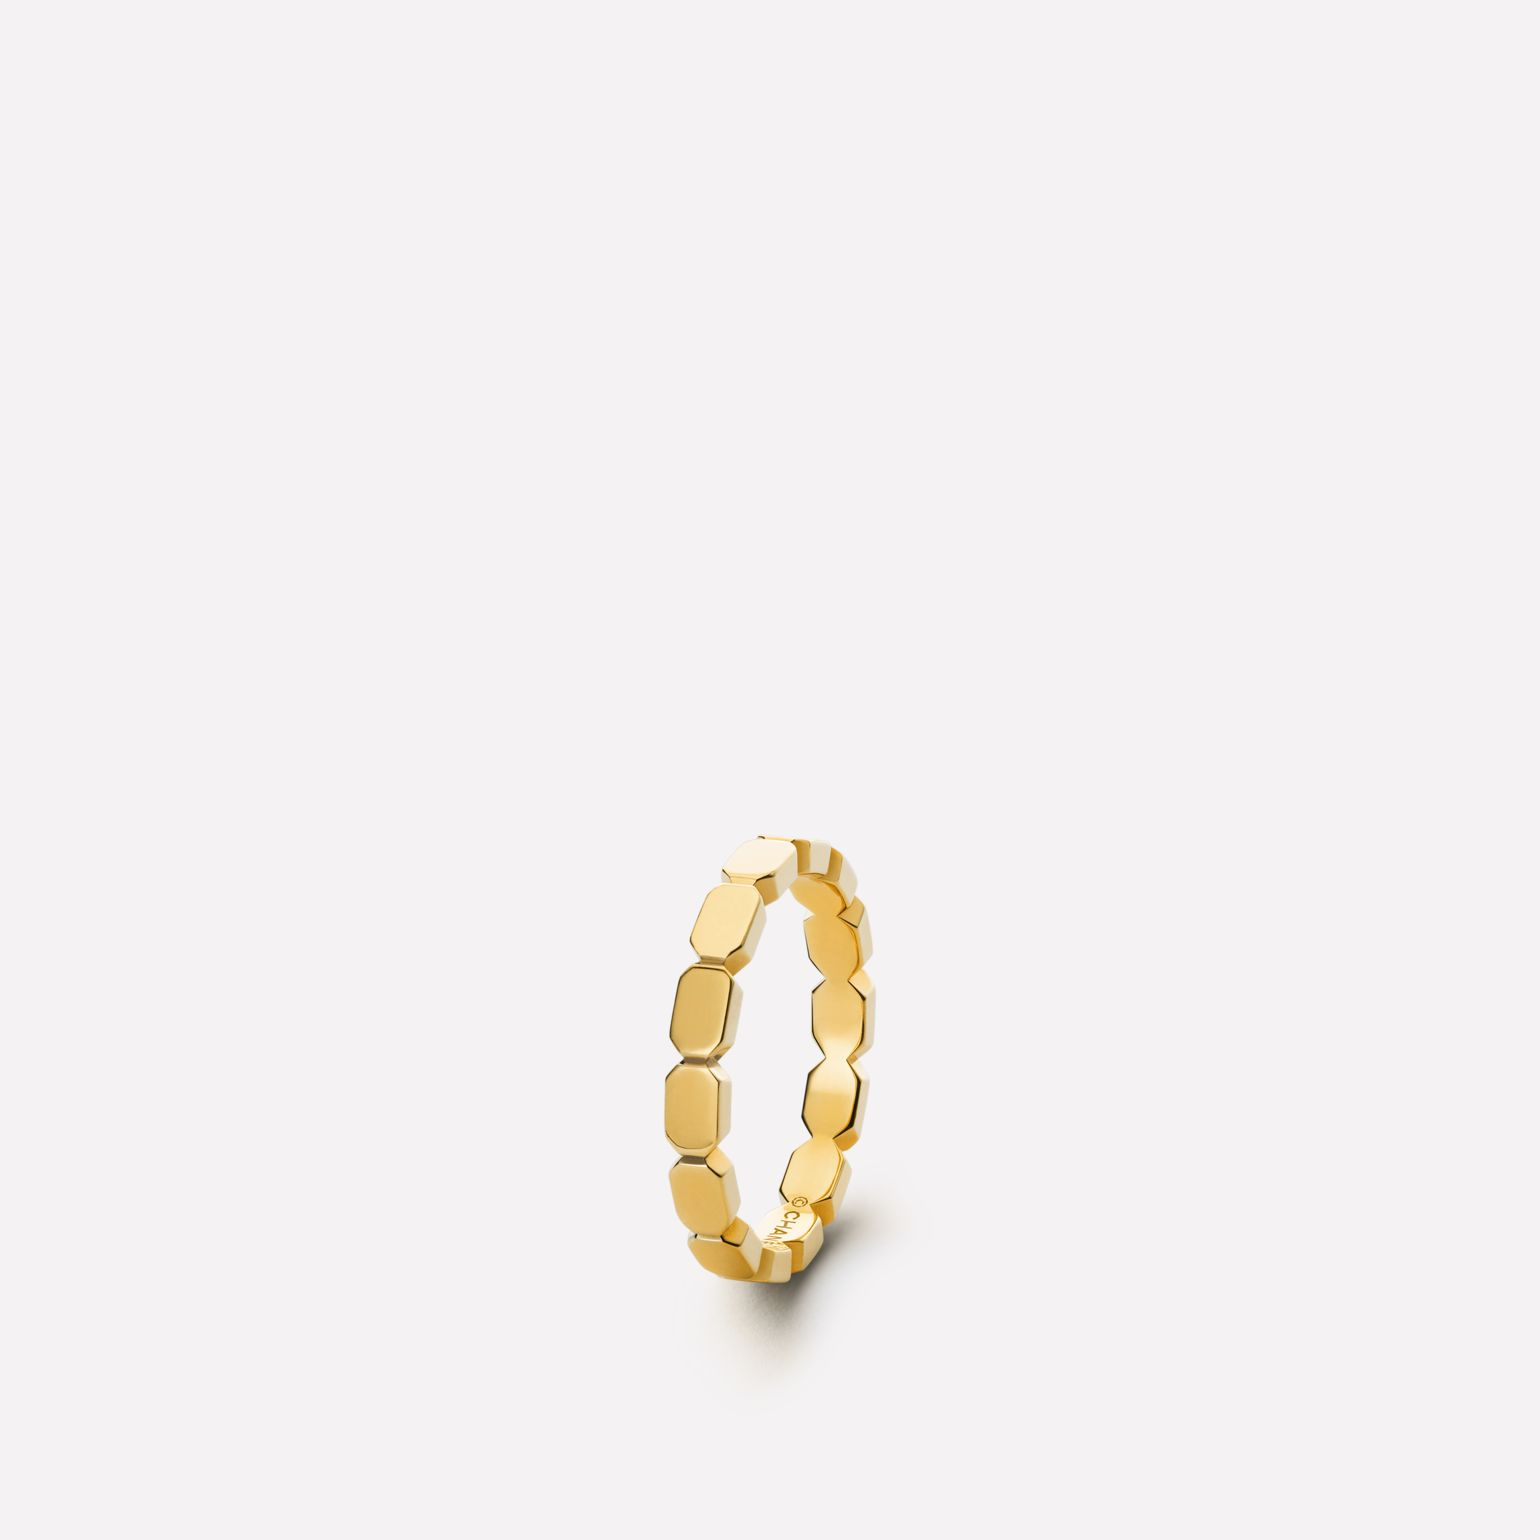 Baroque Ring Baroque ring in 18K yellow gold